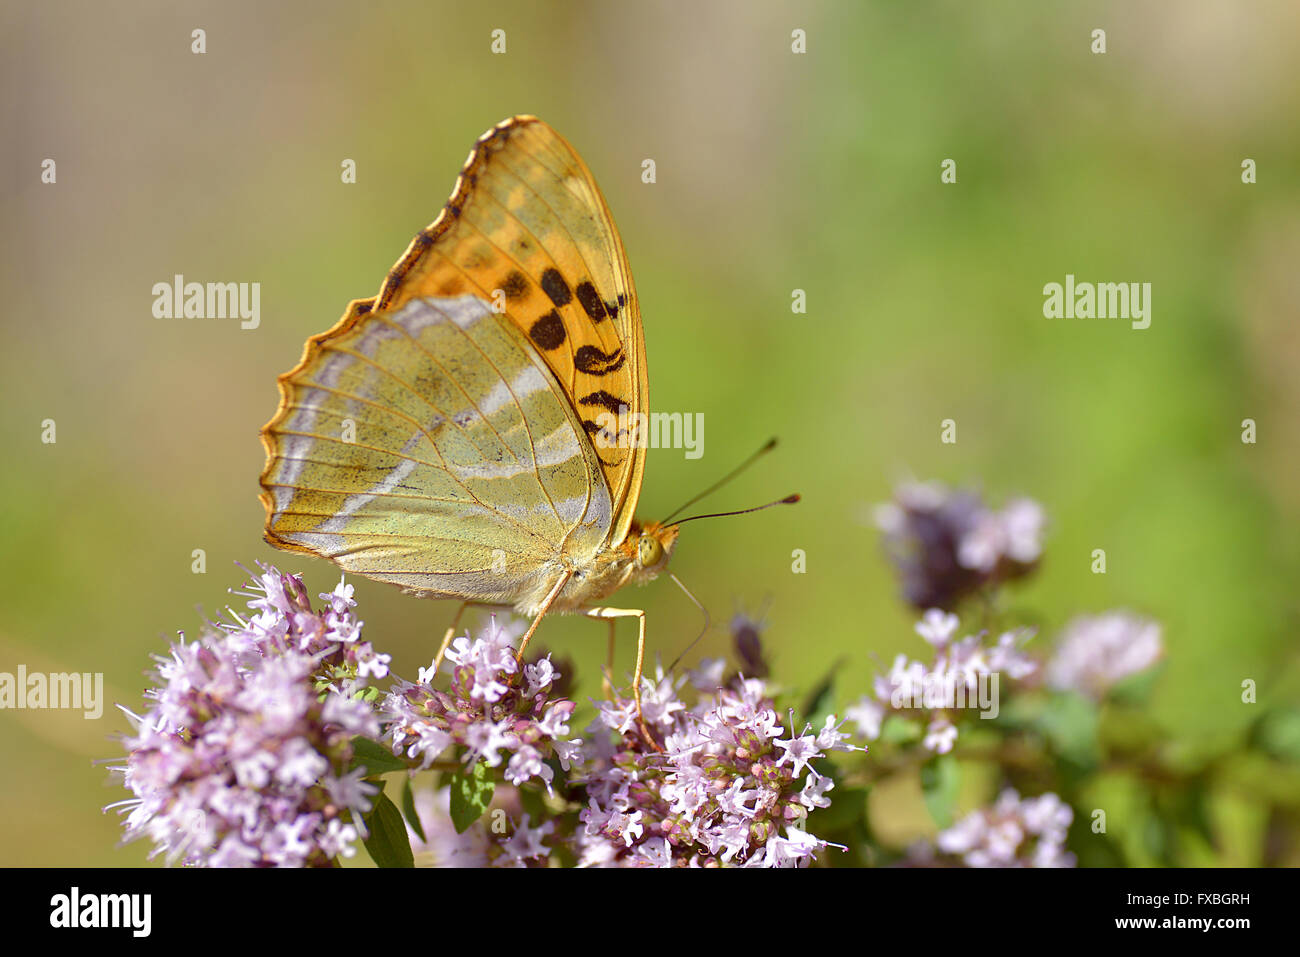 Silver-washed Fritillary butterfly (Argynnis paphia) feeding on flower viewed from profile - Stock Image